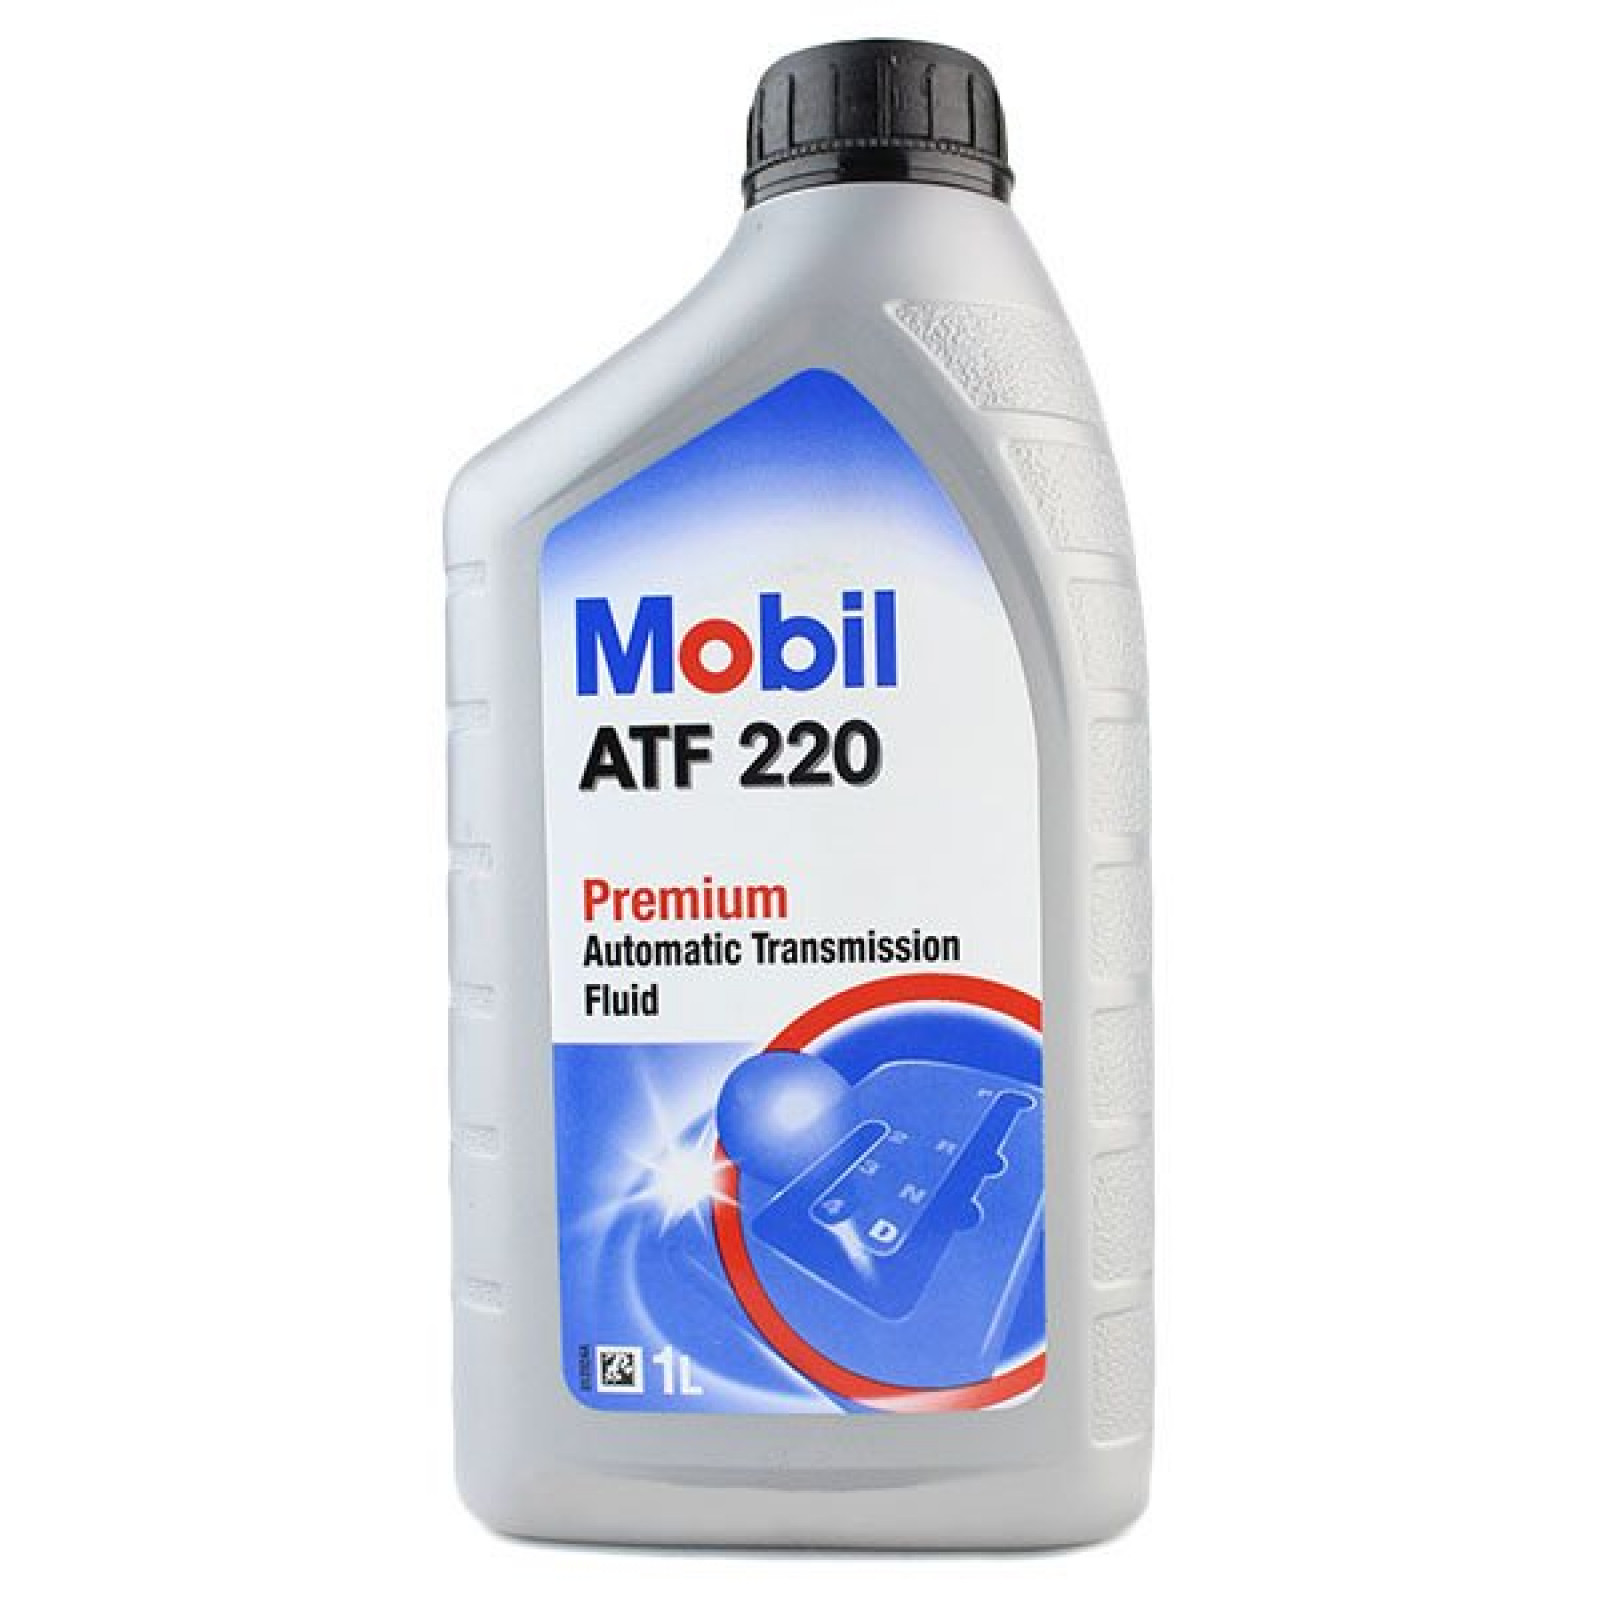 filter benz large htm image automatic trans and transmission change mercedes techarticles fluid